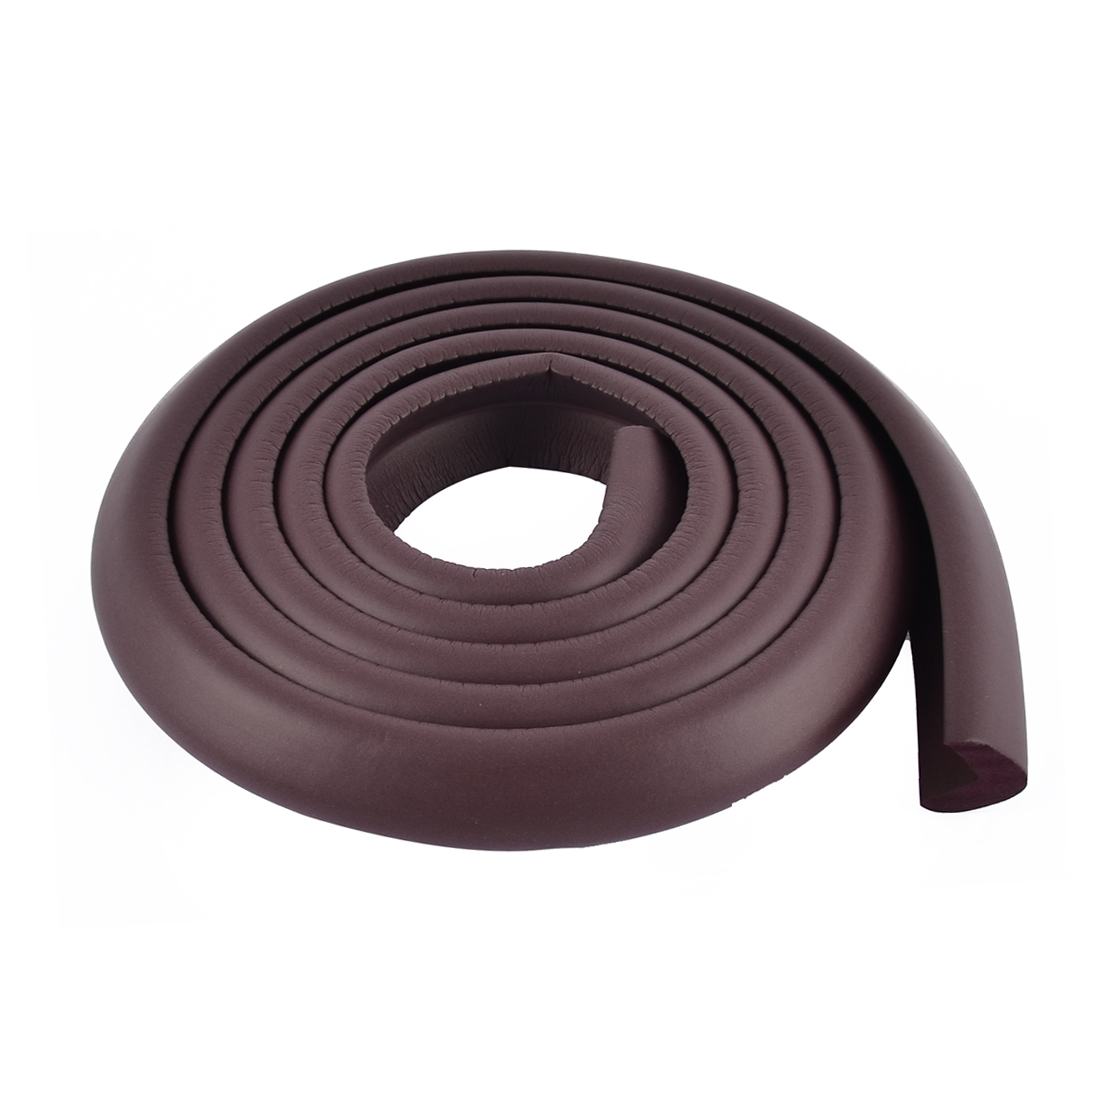 Soft Table Corner Edge Protector Cushion Guard Strip Dark Brown for Baby